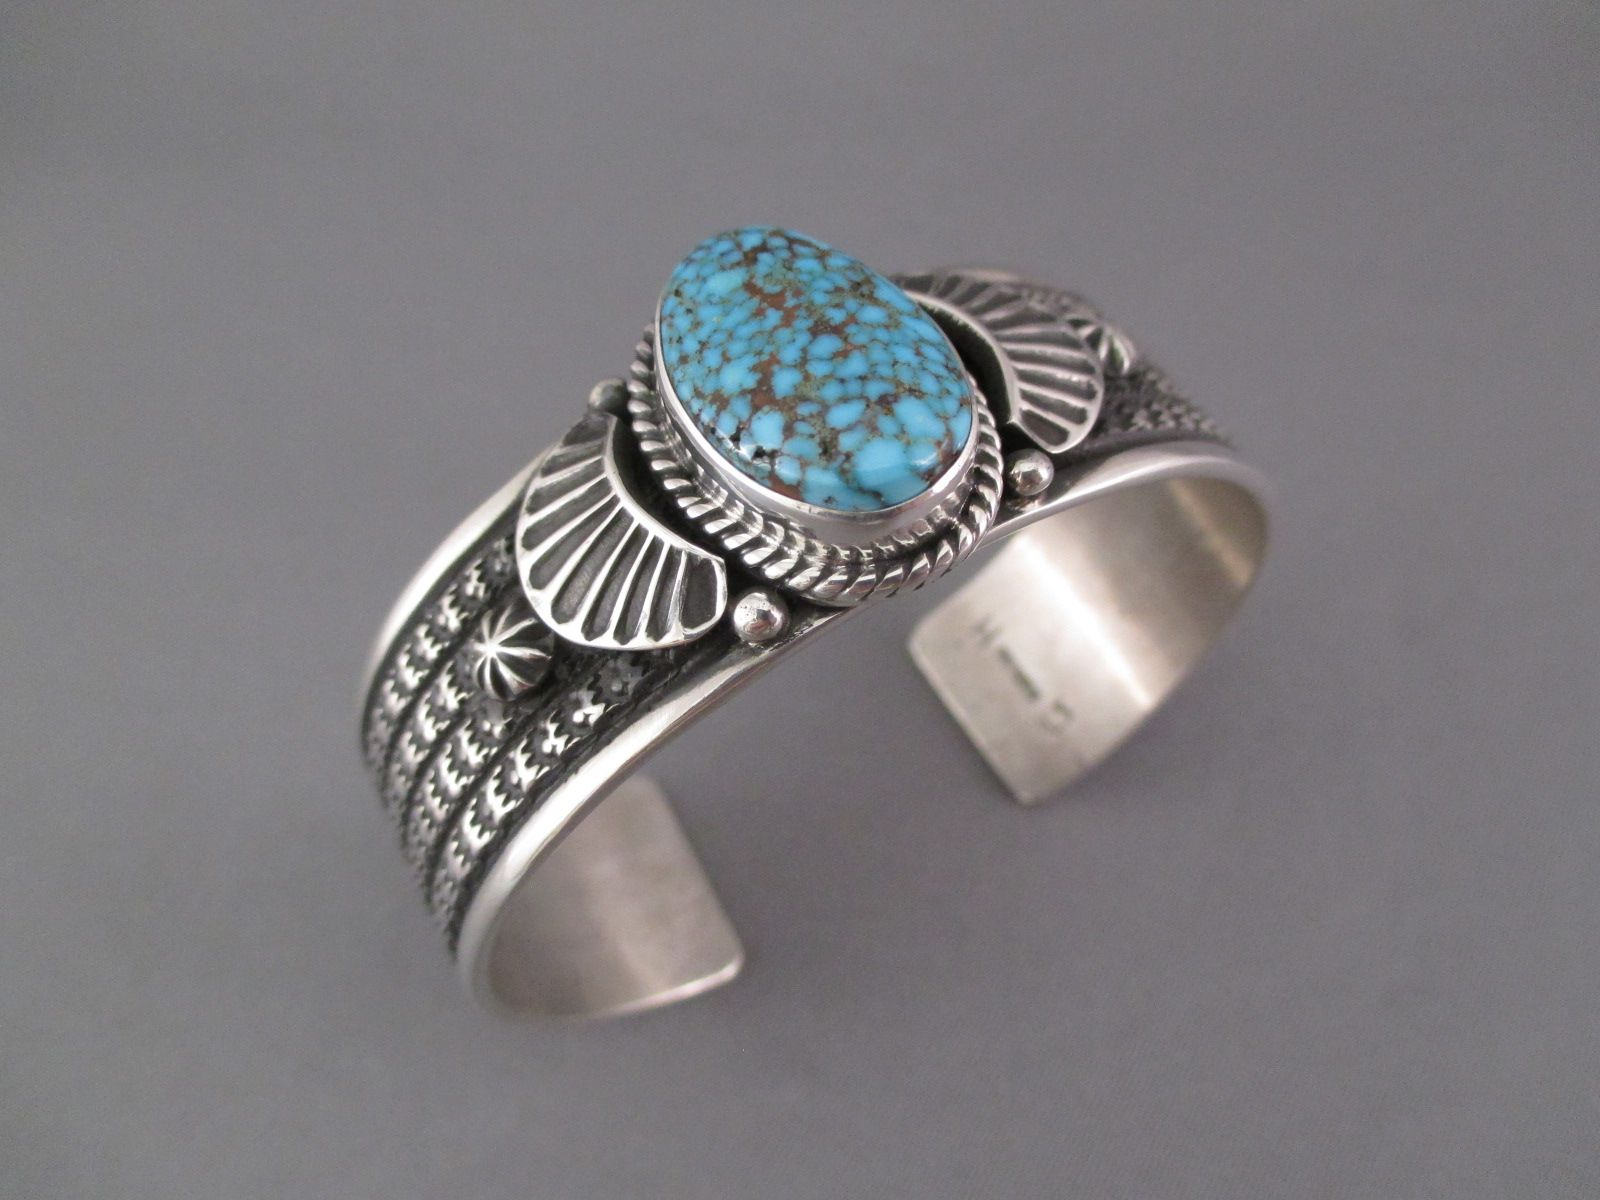 bec47c7b651 A single Kingman Turquoise stone highlights this very attractive sterling  silver cuff bracelet by Native American (Navajo) jeweler, Guy Hoskie.  Turquoise!